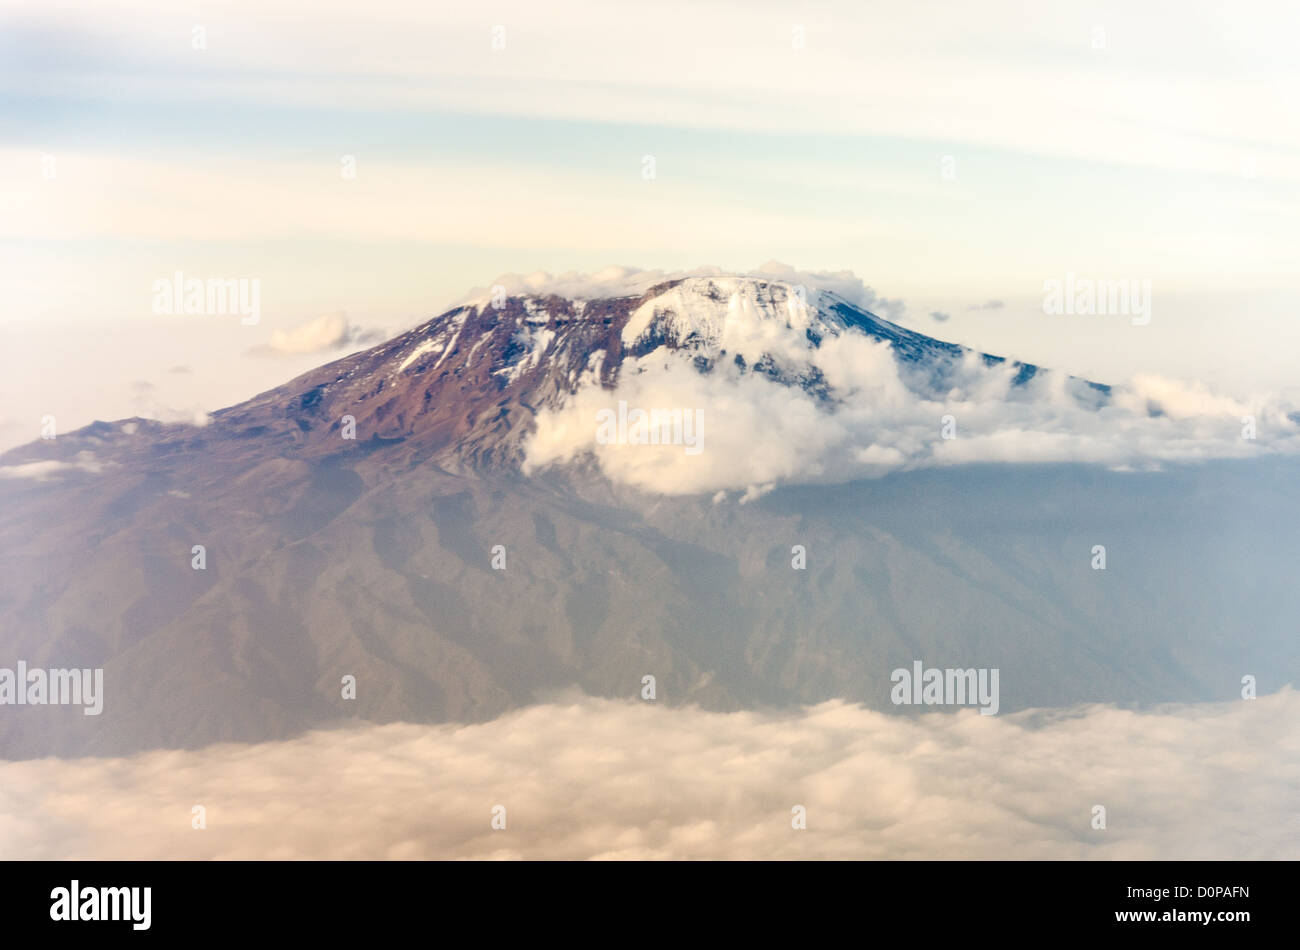 An aerial shot of the summit of Mt Kilimanjaro in Tanzania, with snow and clouds. - Stock Image